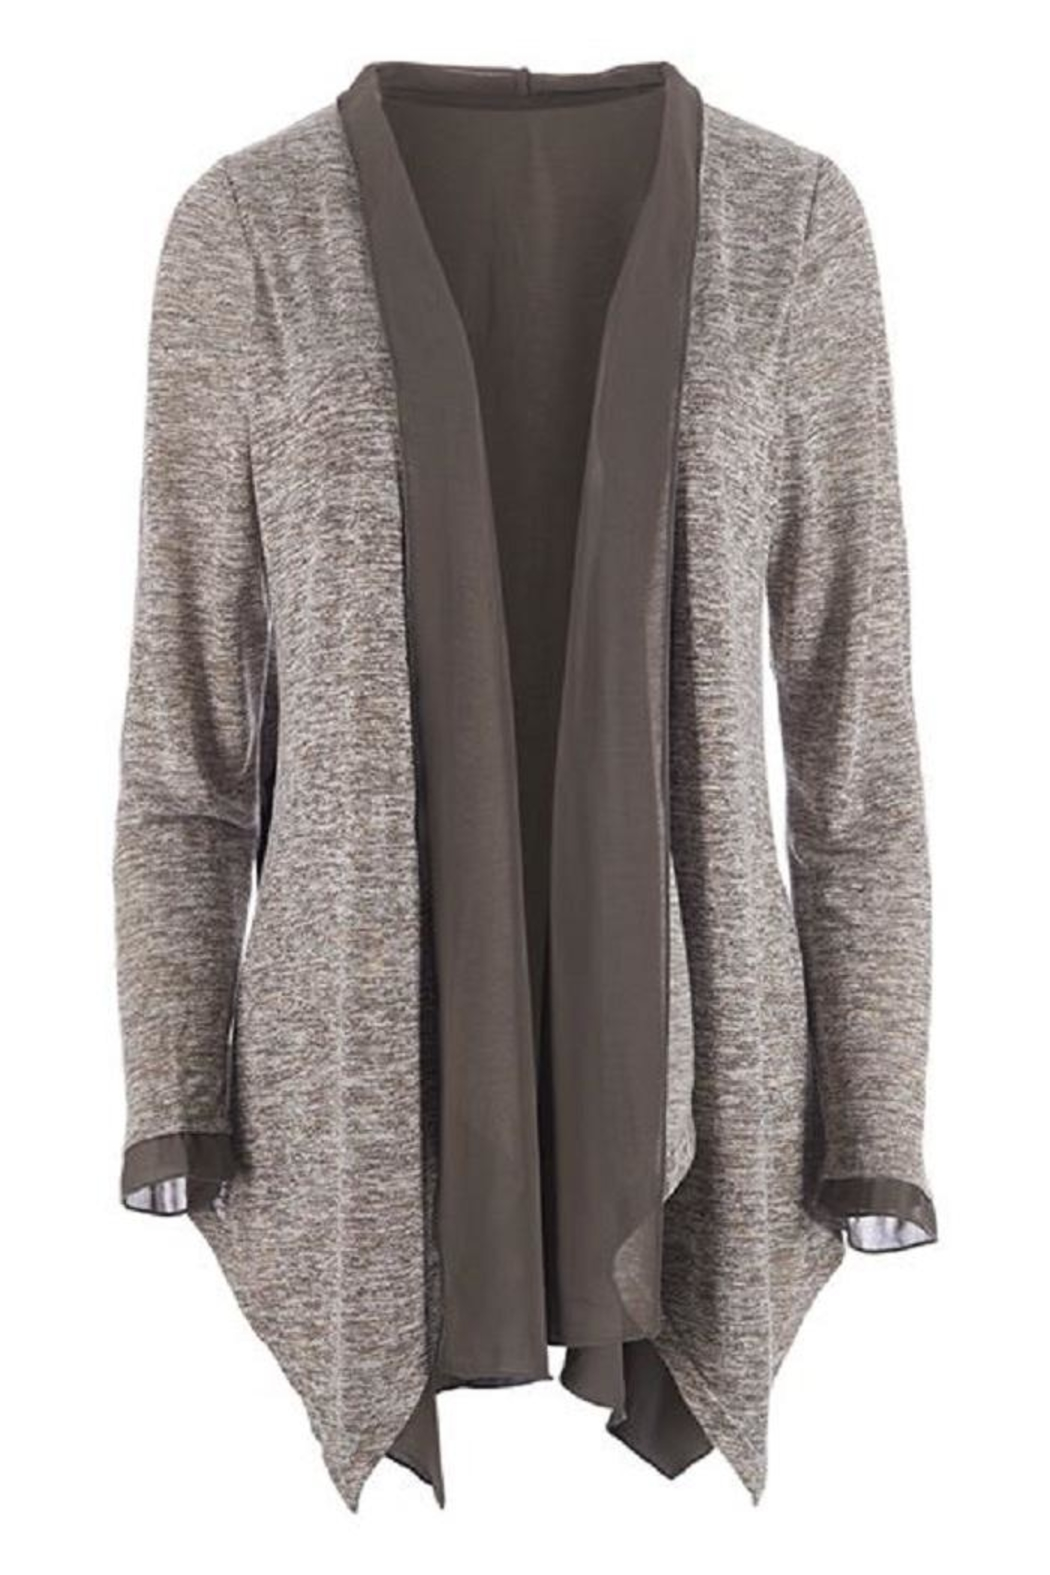 Coco + Carmen Sheer Trim Cardigan - Front Cropped Image